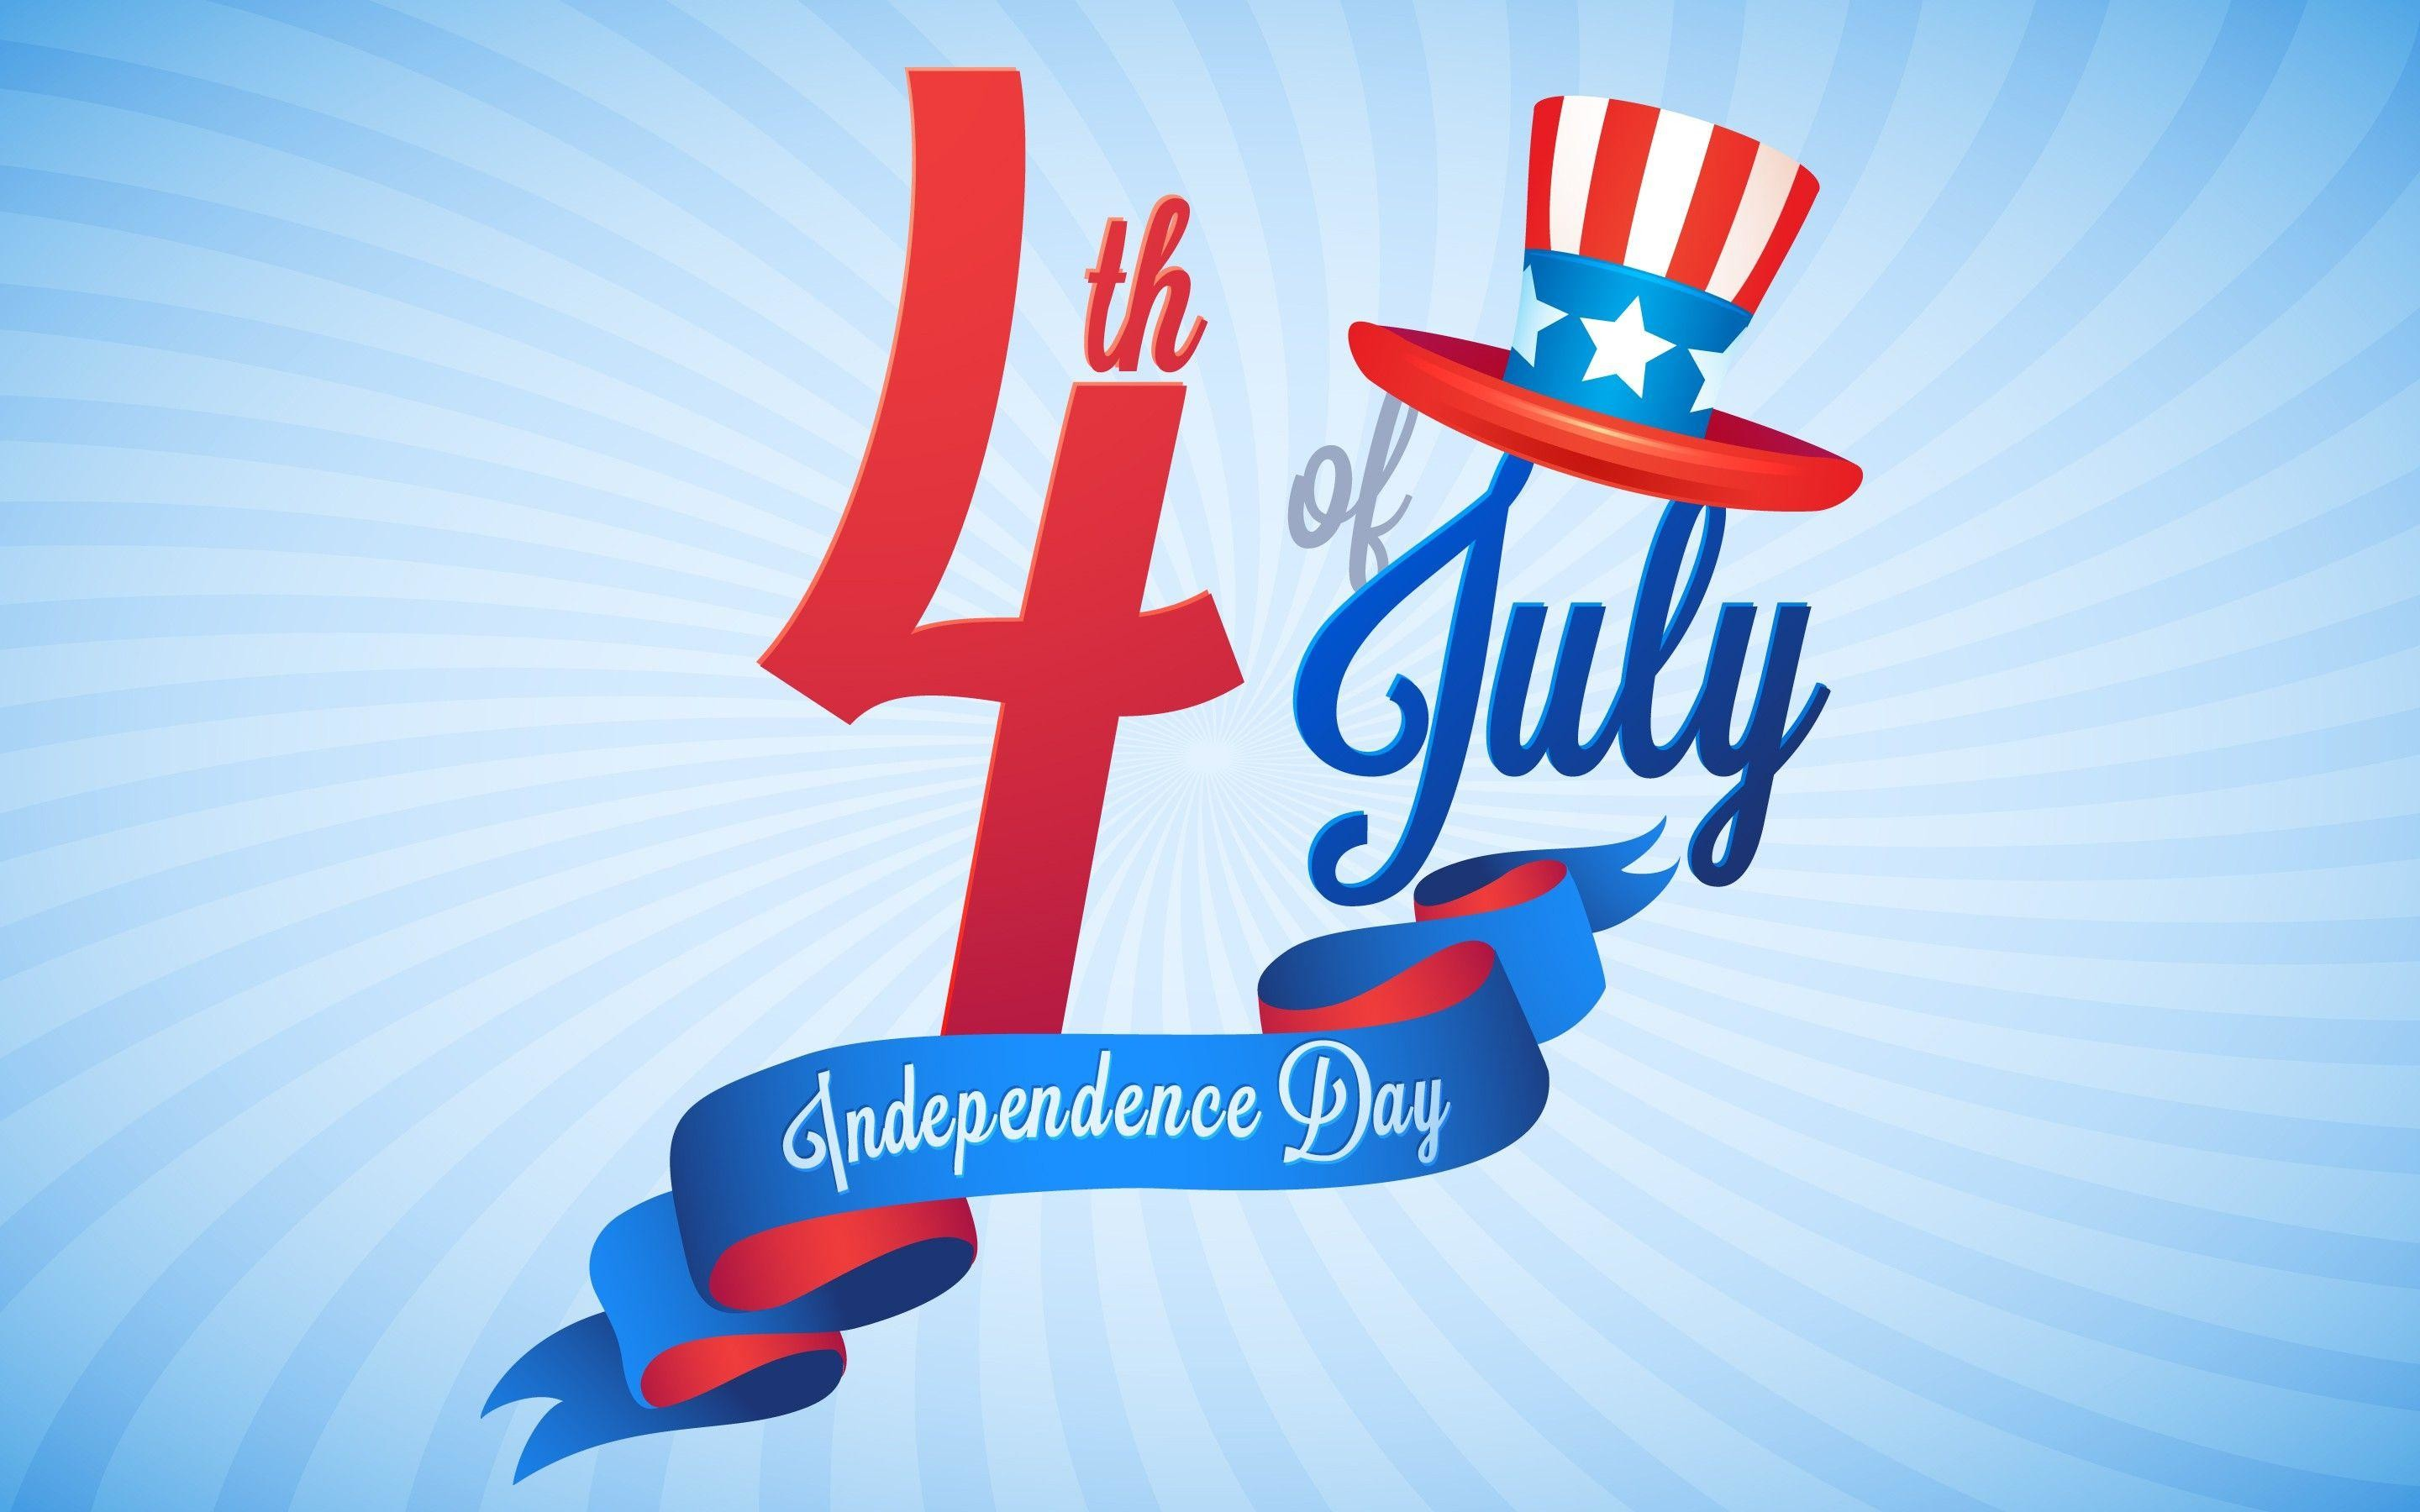 Free HD wallpapers for Independence day / 4th July of USA .